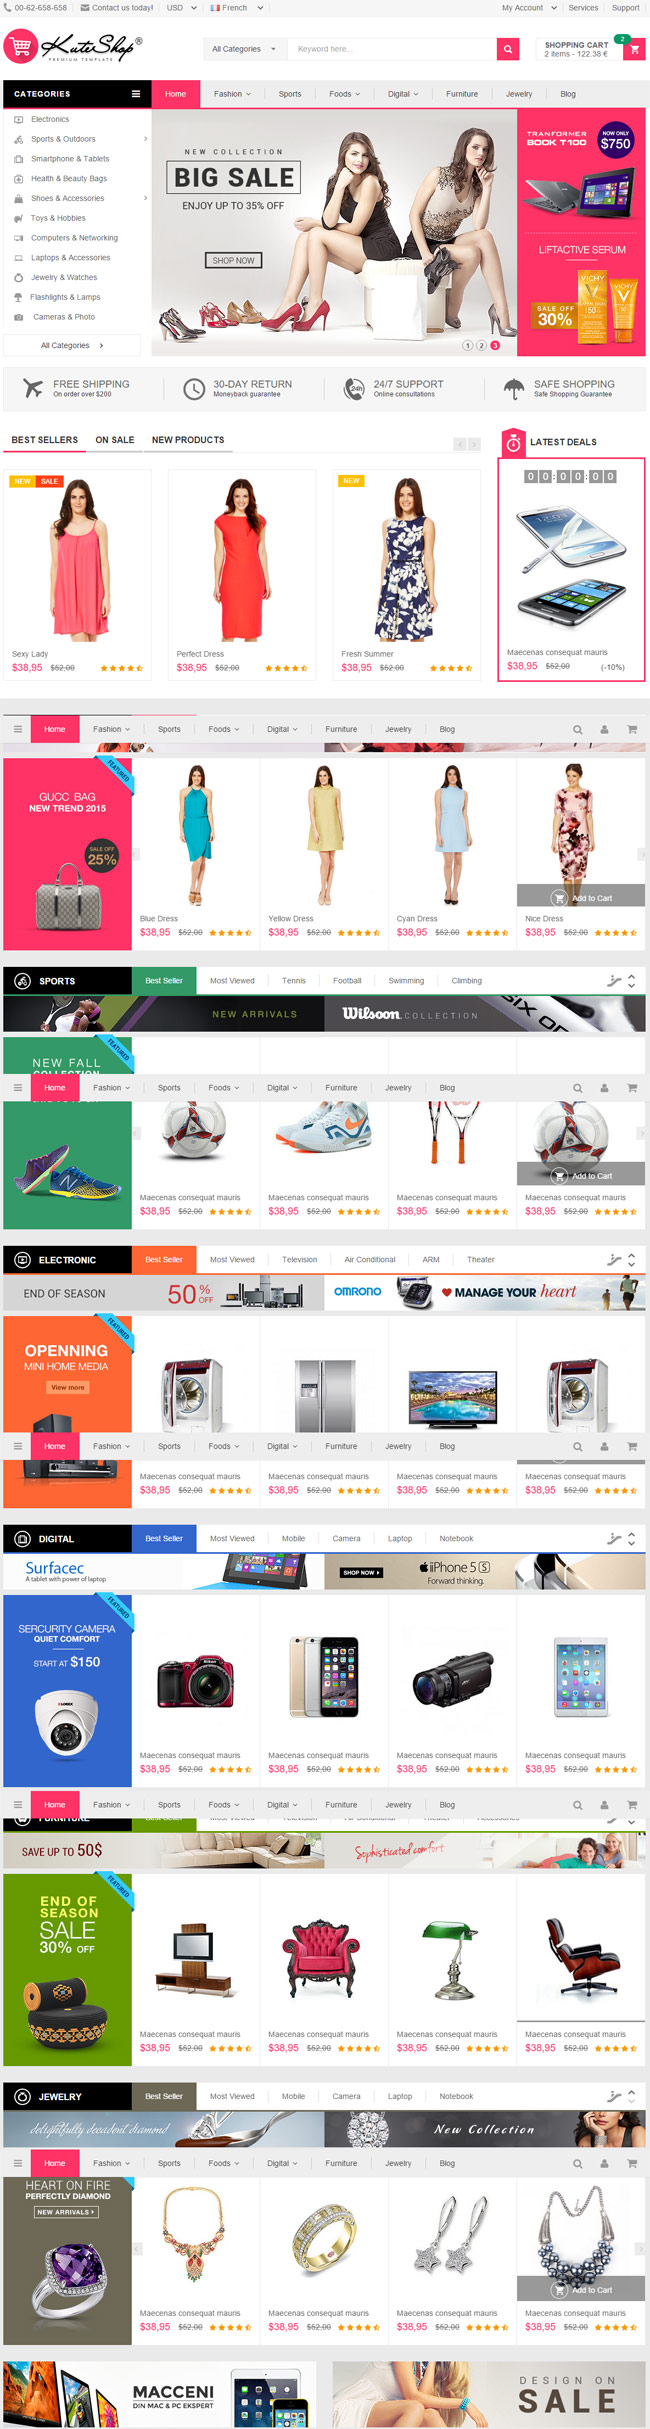 KuteShop-Multi-Purpose-Ecommerce-HTML-Template